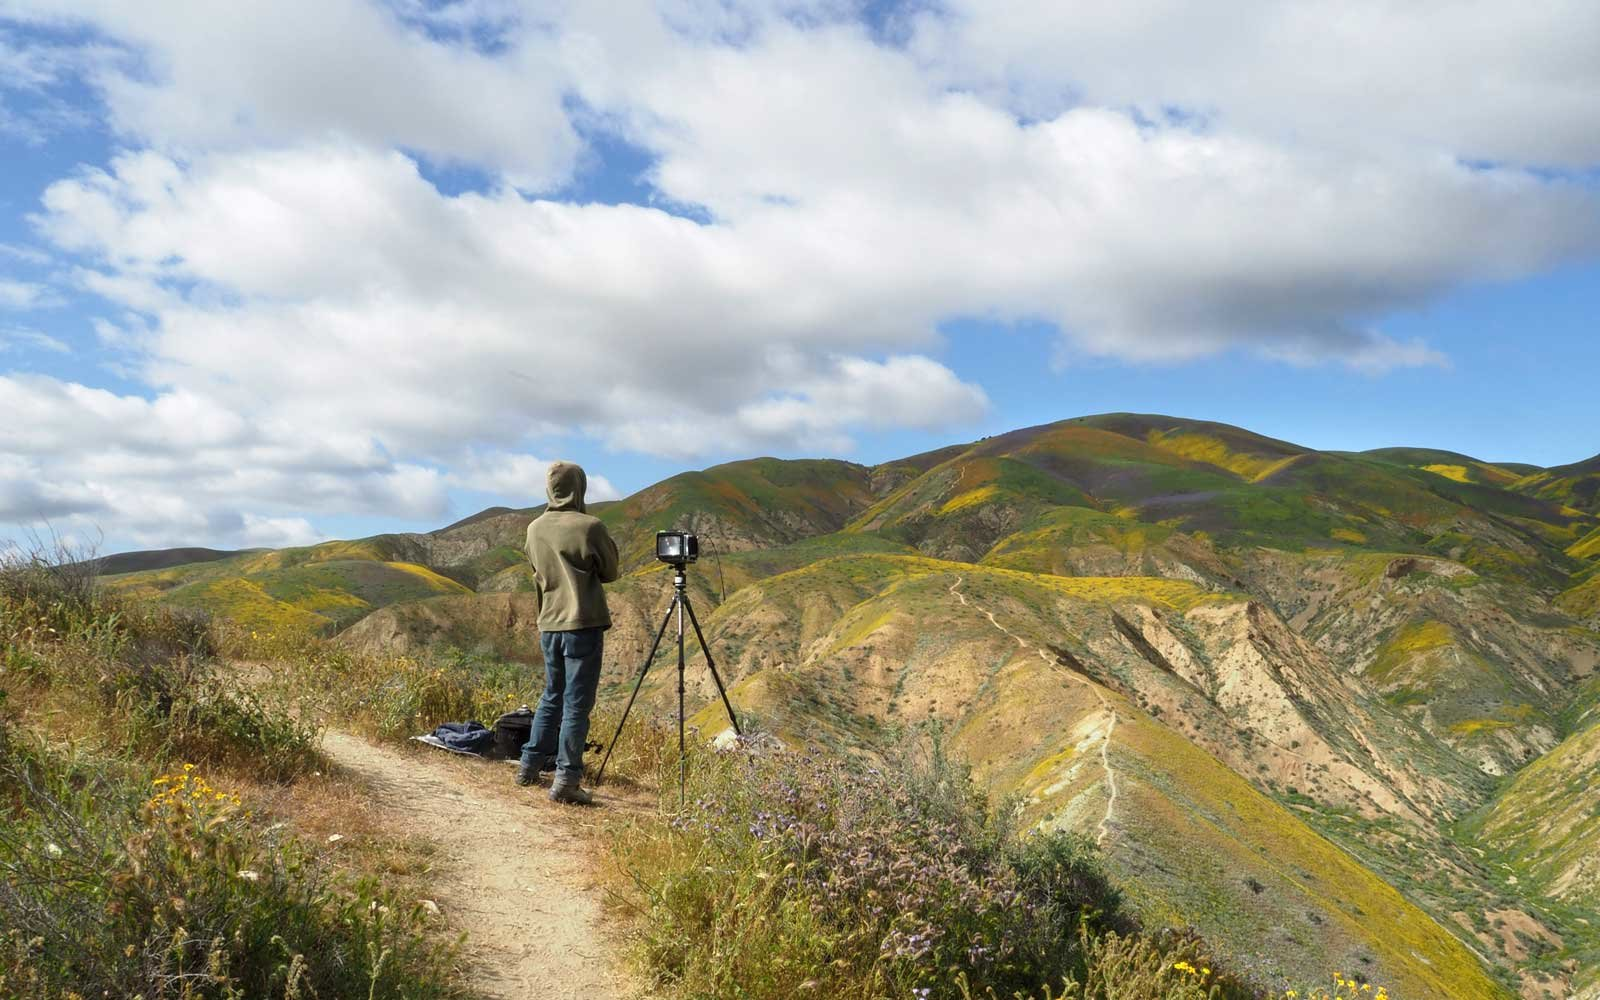 Find out the best places to see wildflowers in Northern and Southern California this year